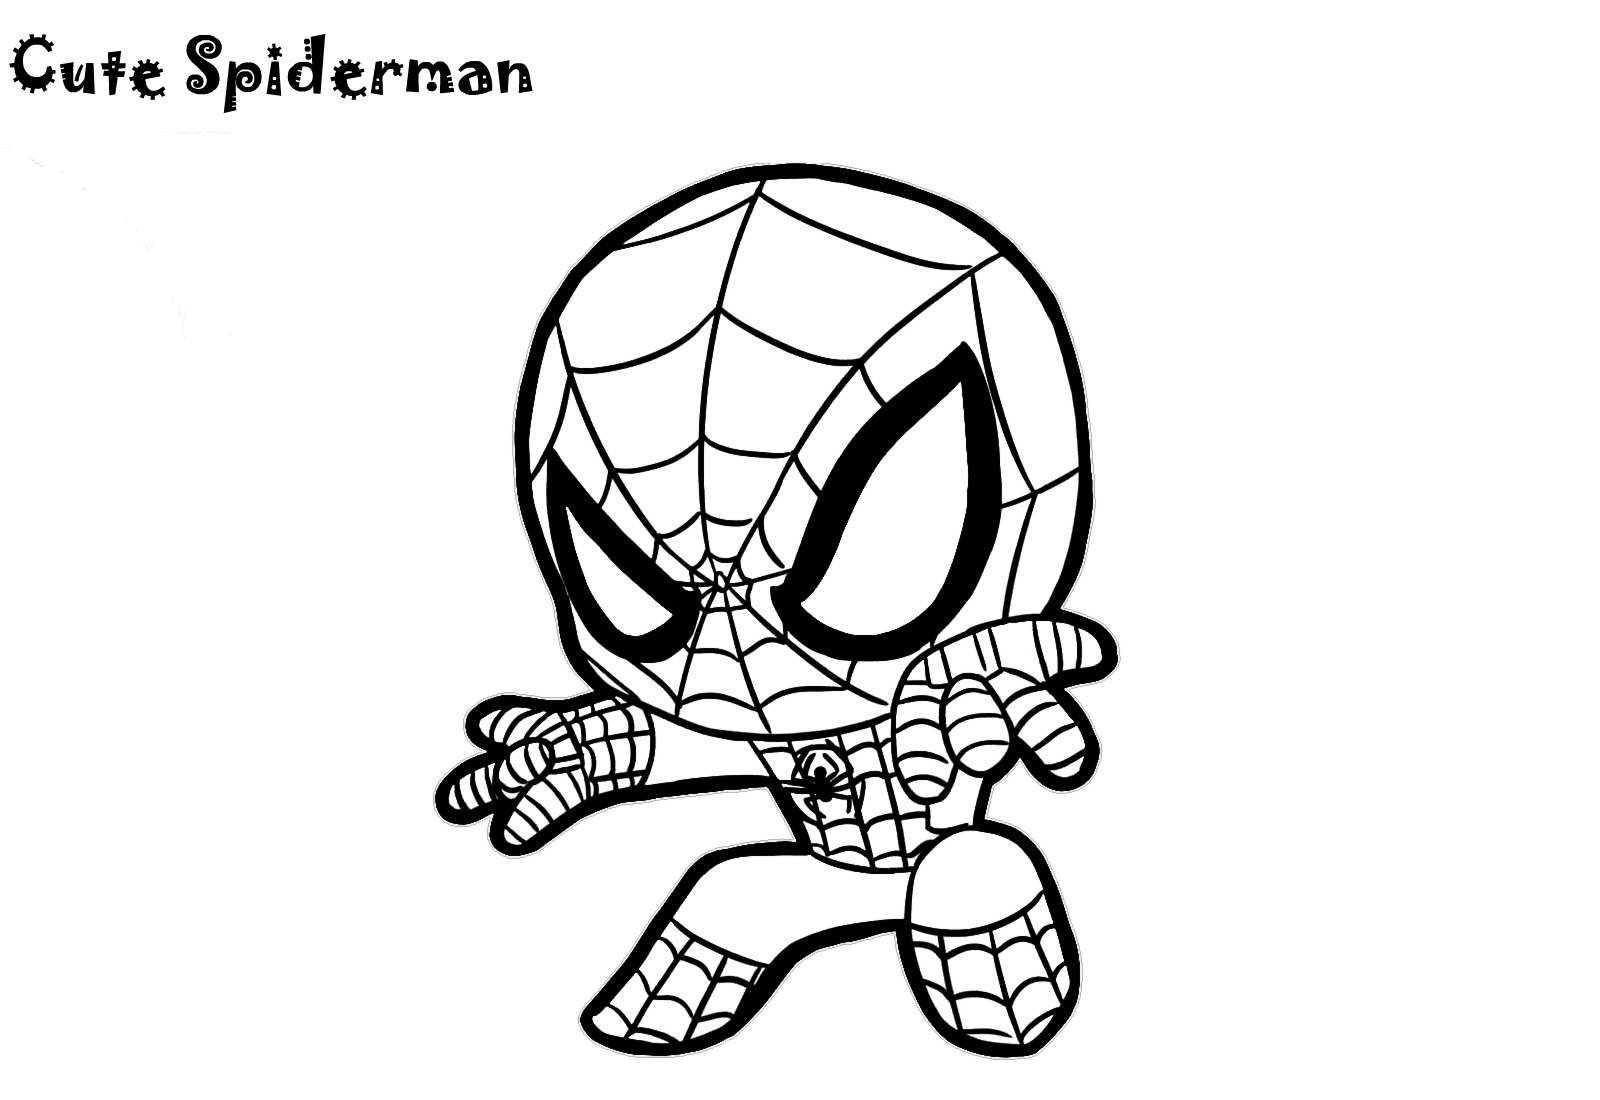 Cute Little Spiderman Coloring Pages Chibi Cartoon Sheets